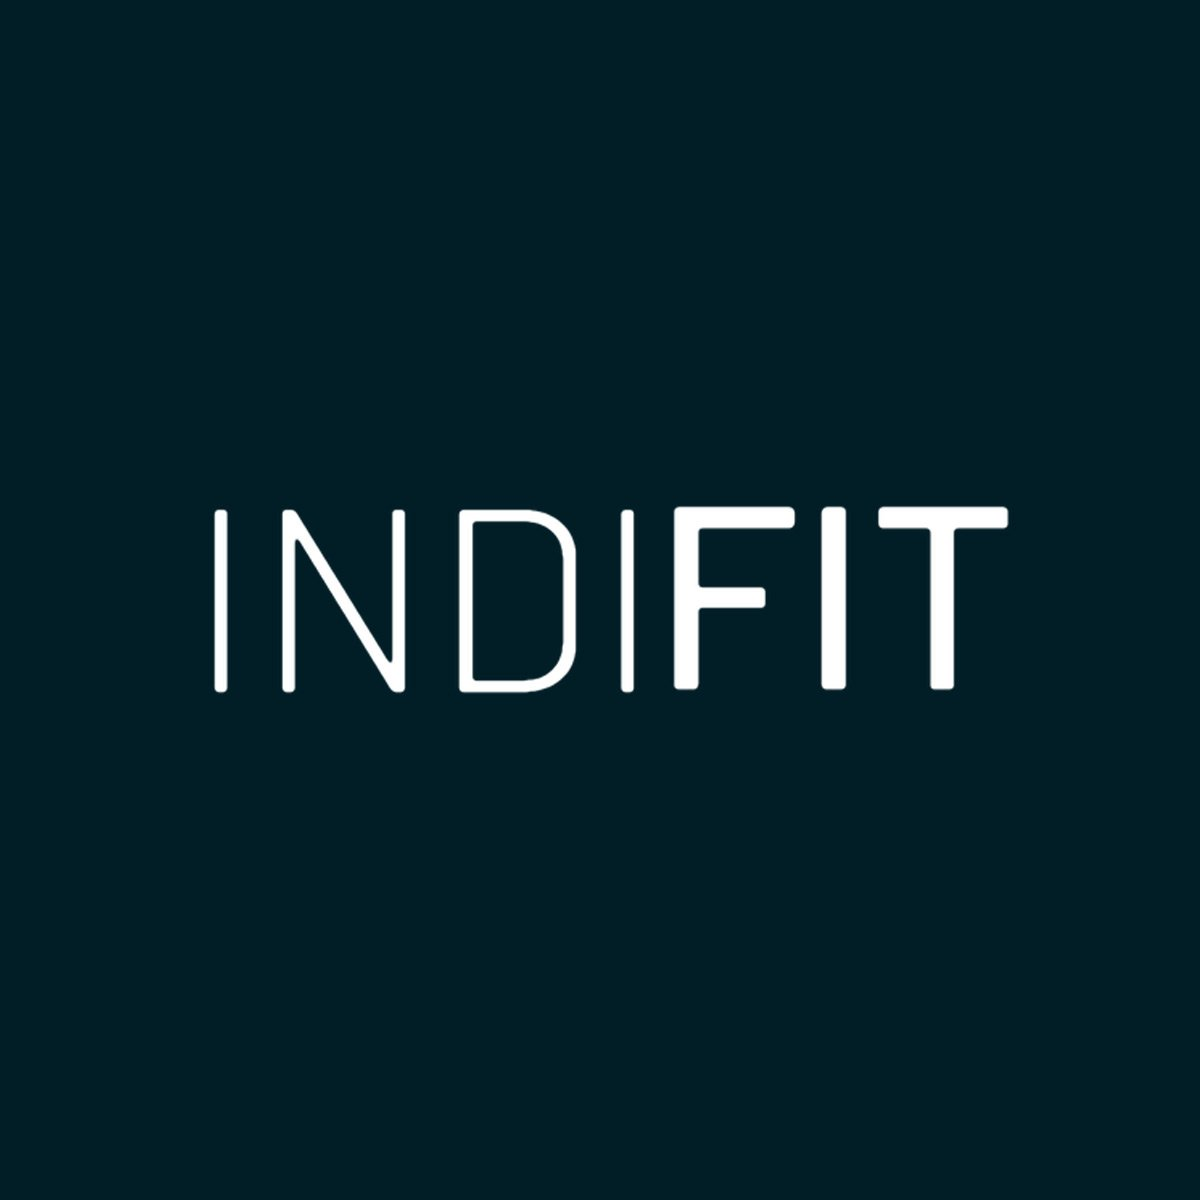 IndiFit